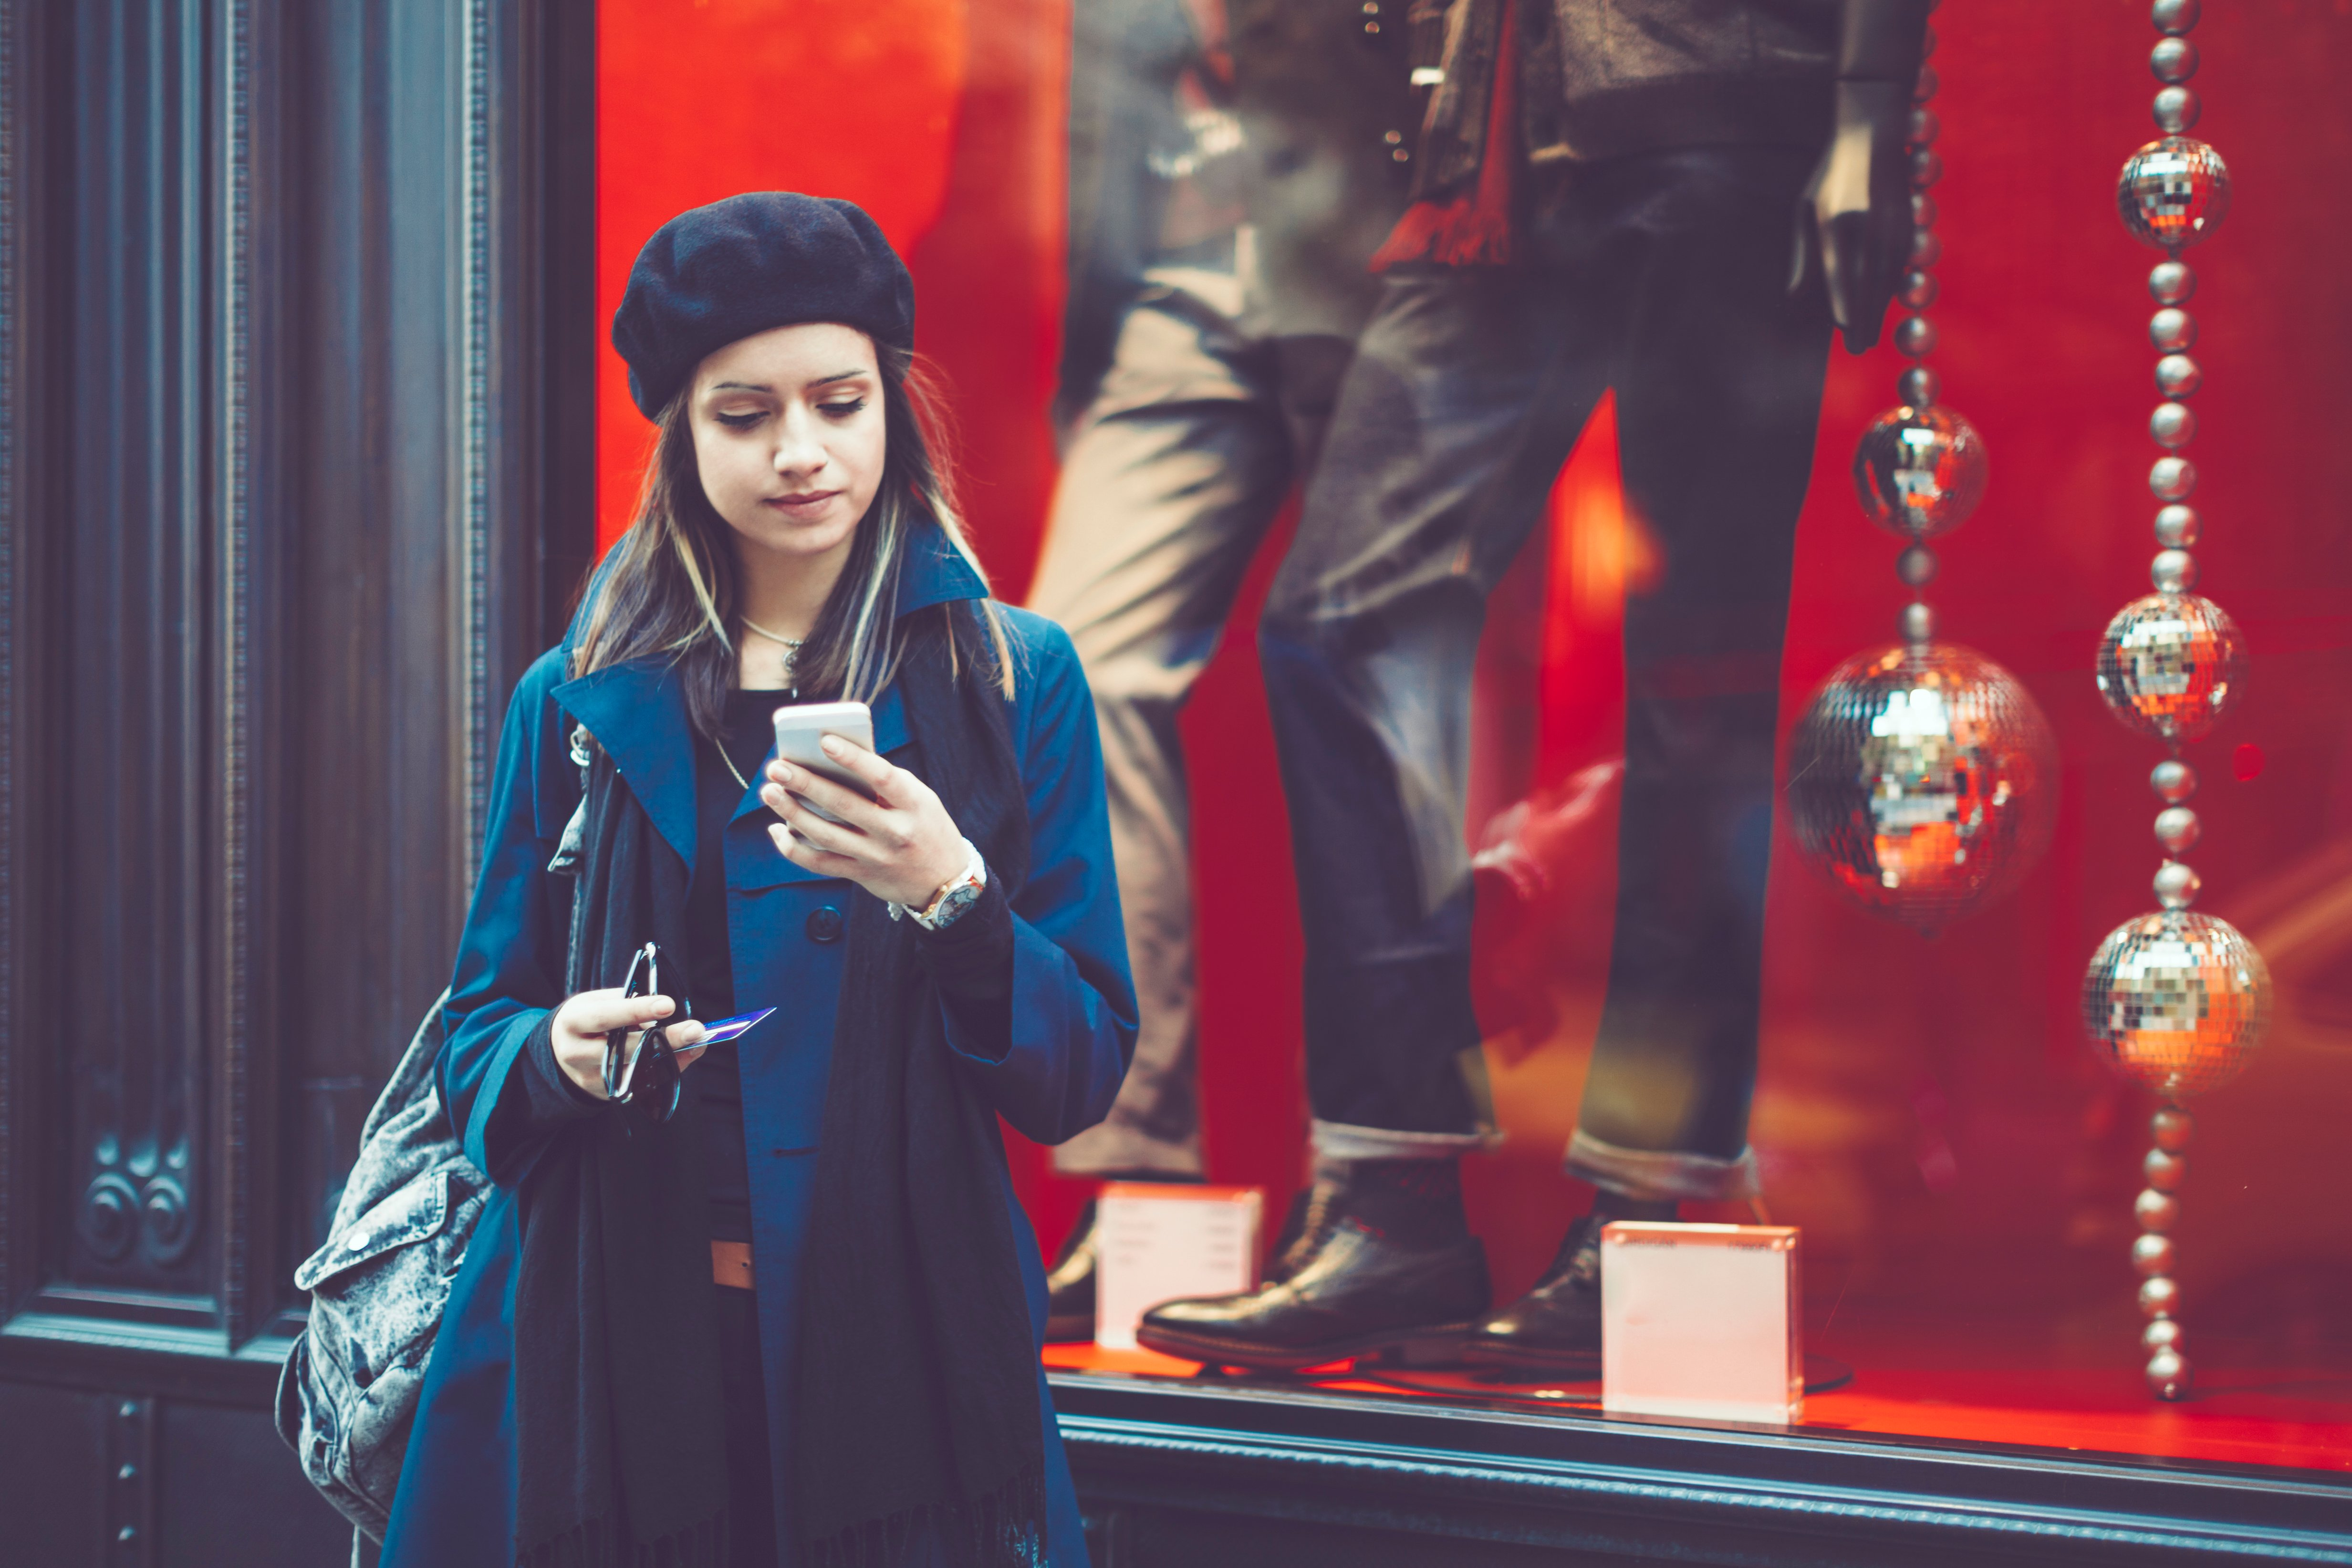 Woman-with-mobile-phone-in-front-of-shop-window